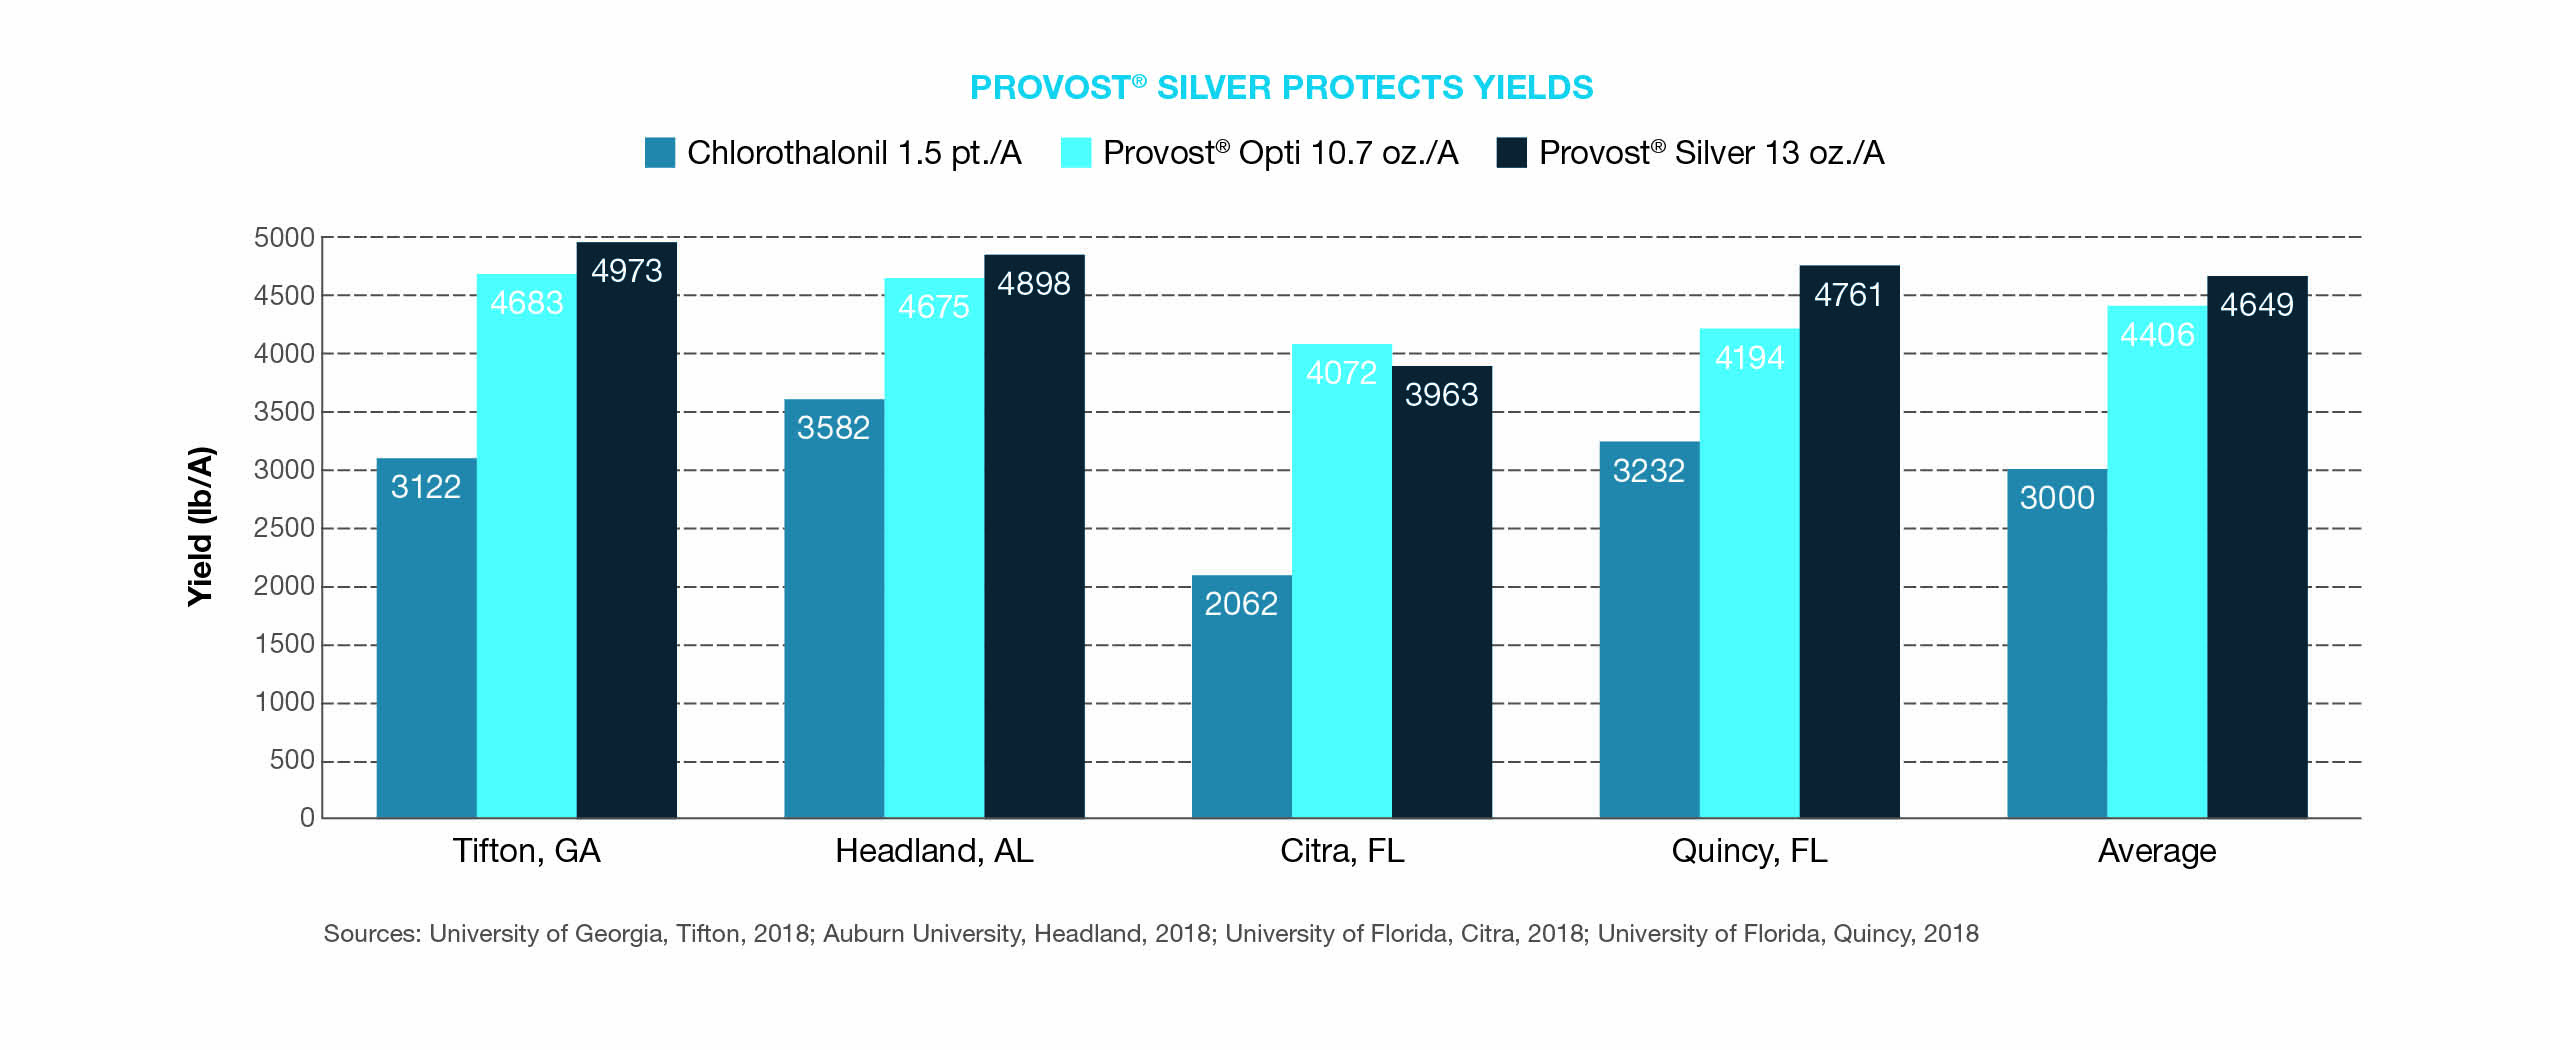 Provost Silver Protects Yields